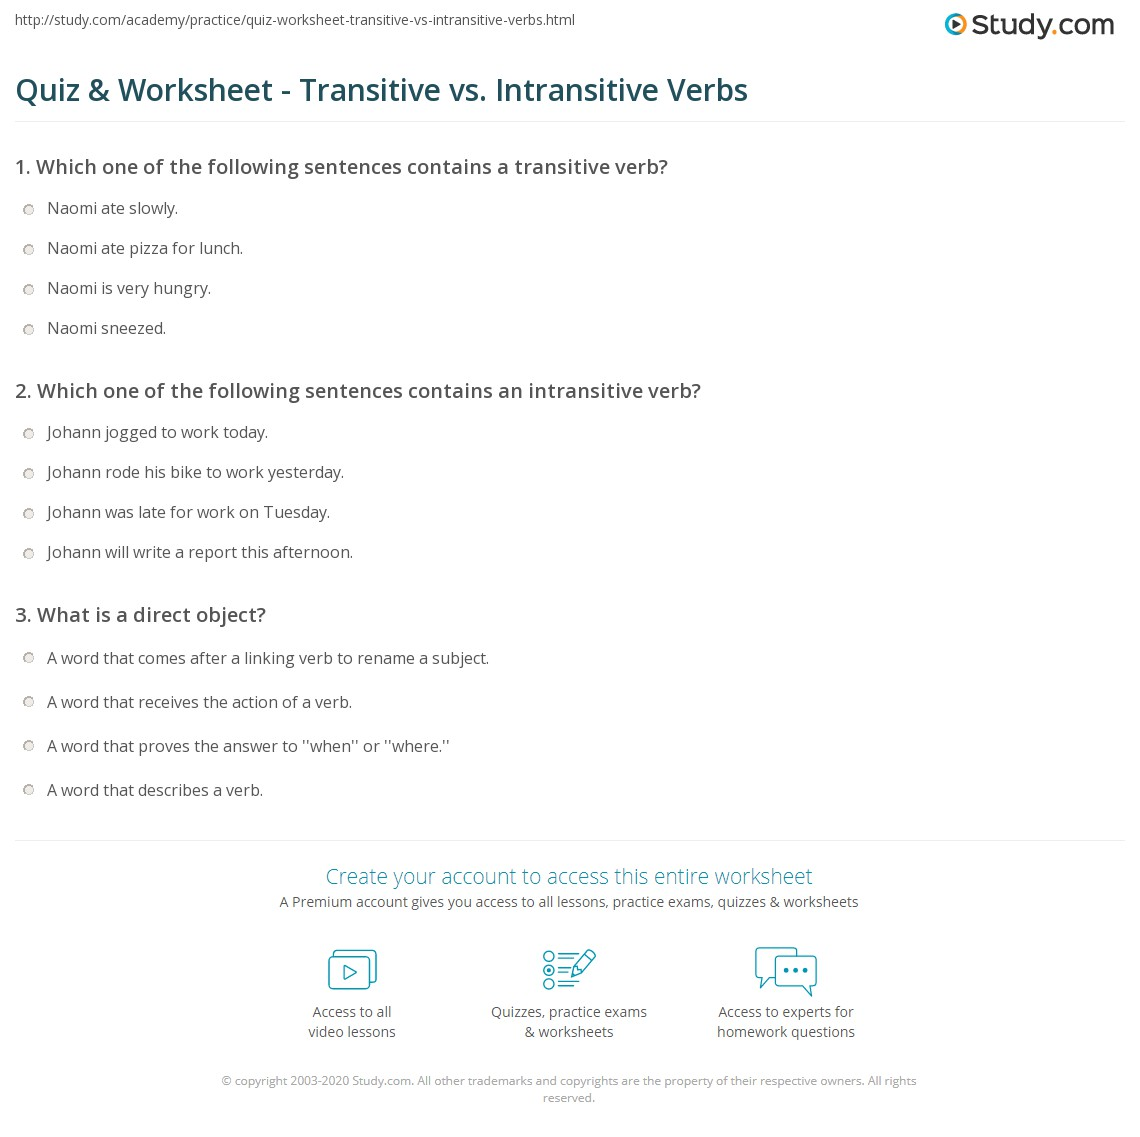 Quiz Worksheet Transitive vs Intransitive Verbs – Transitive and Intransitive Verbs Worksheet